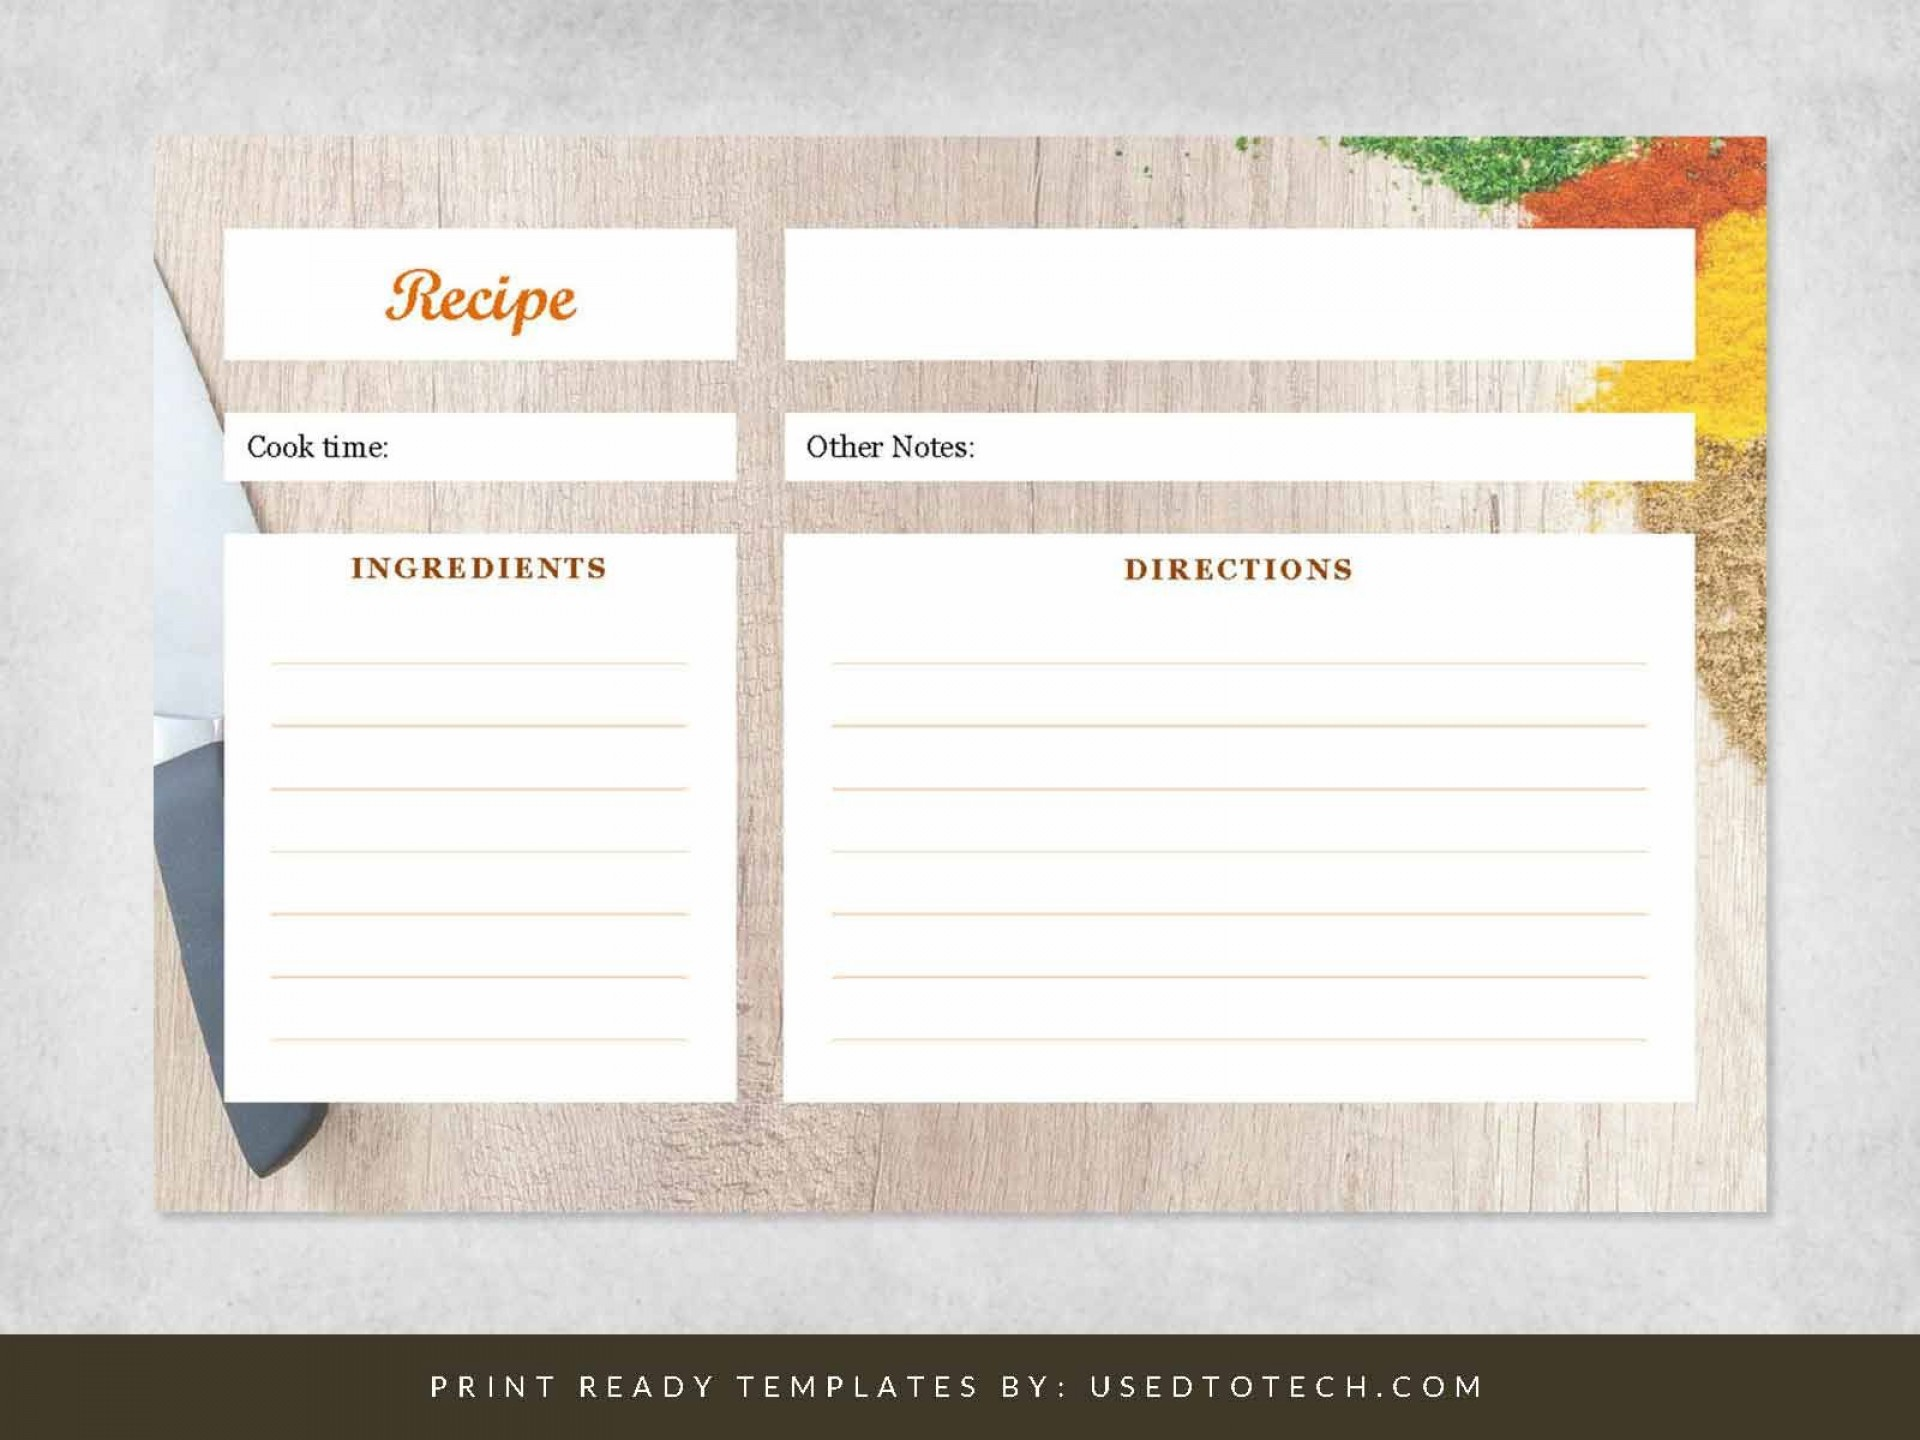 000 Unbelievable Recipe Card Template For Word Sample  Printable Blank Fillable1920